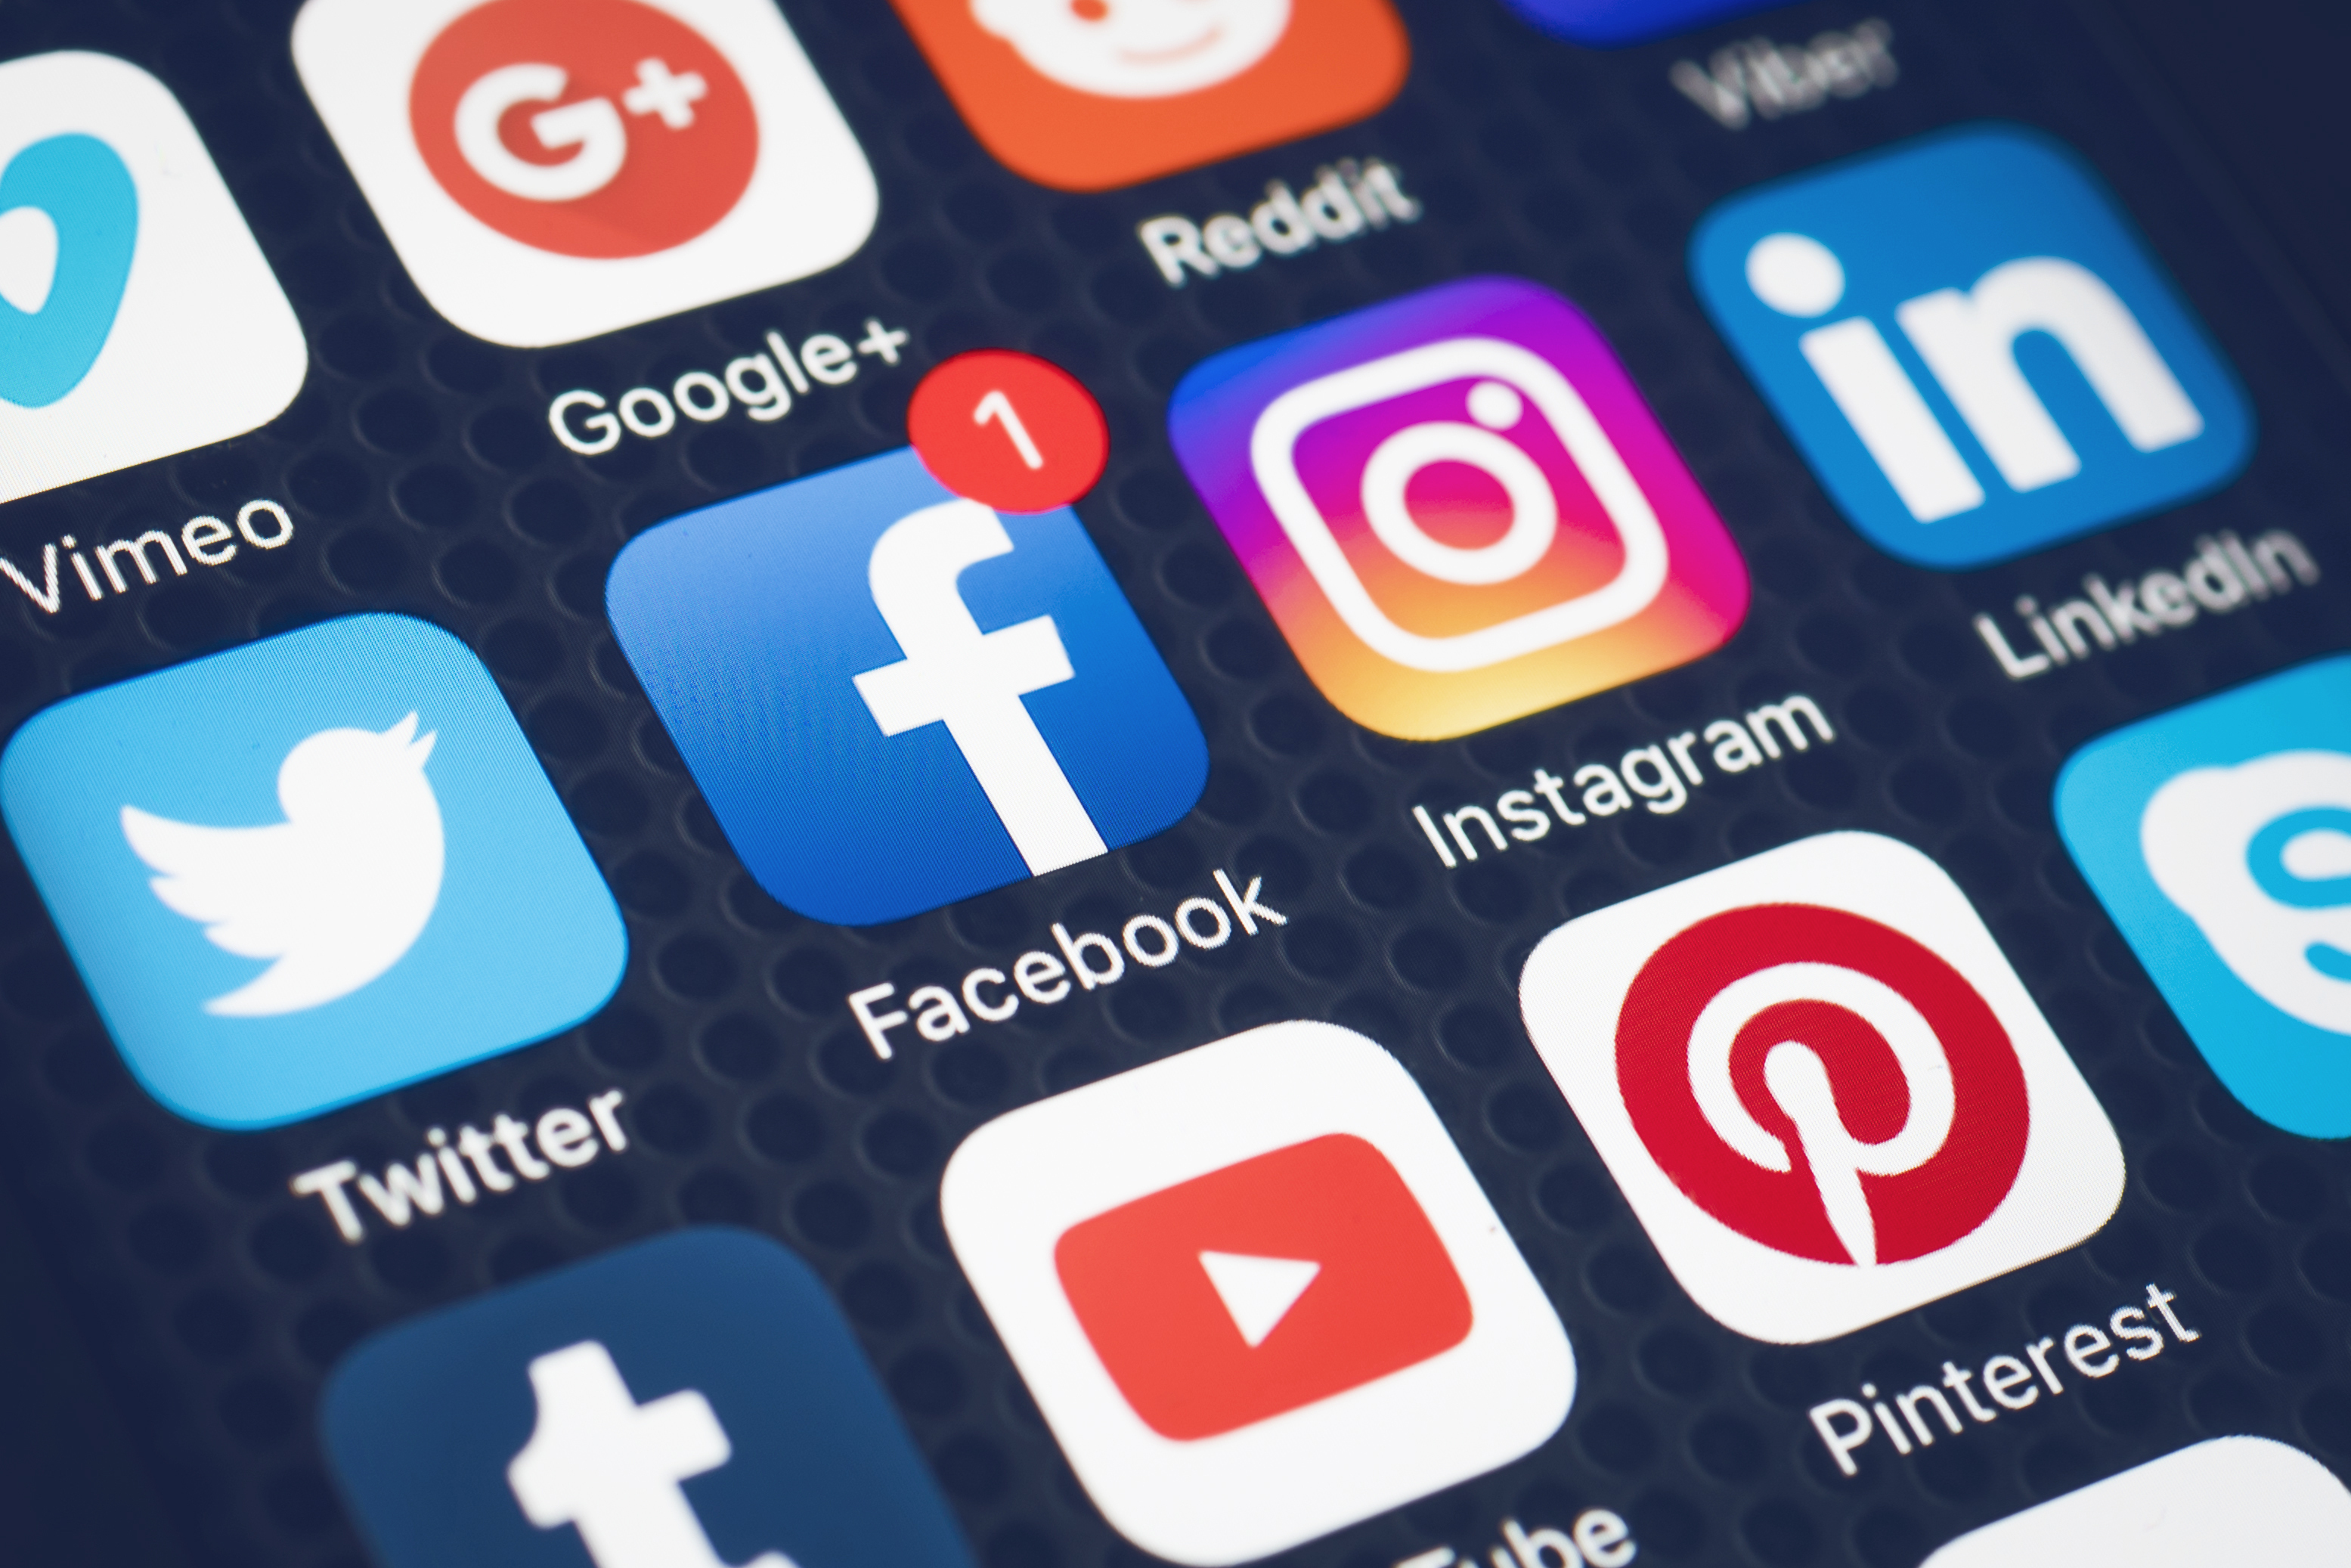 us visa applicants now to submit 5 years of social media activities - 5 types of information you must never give on social media